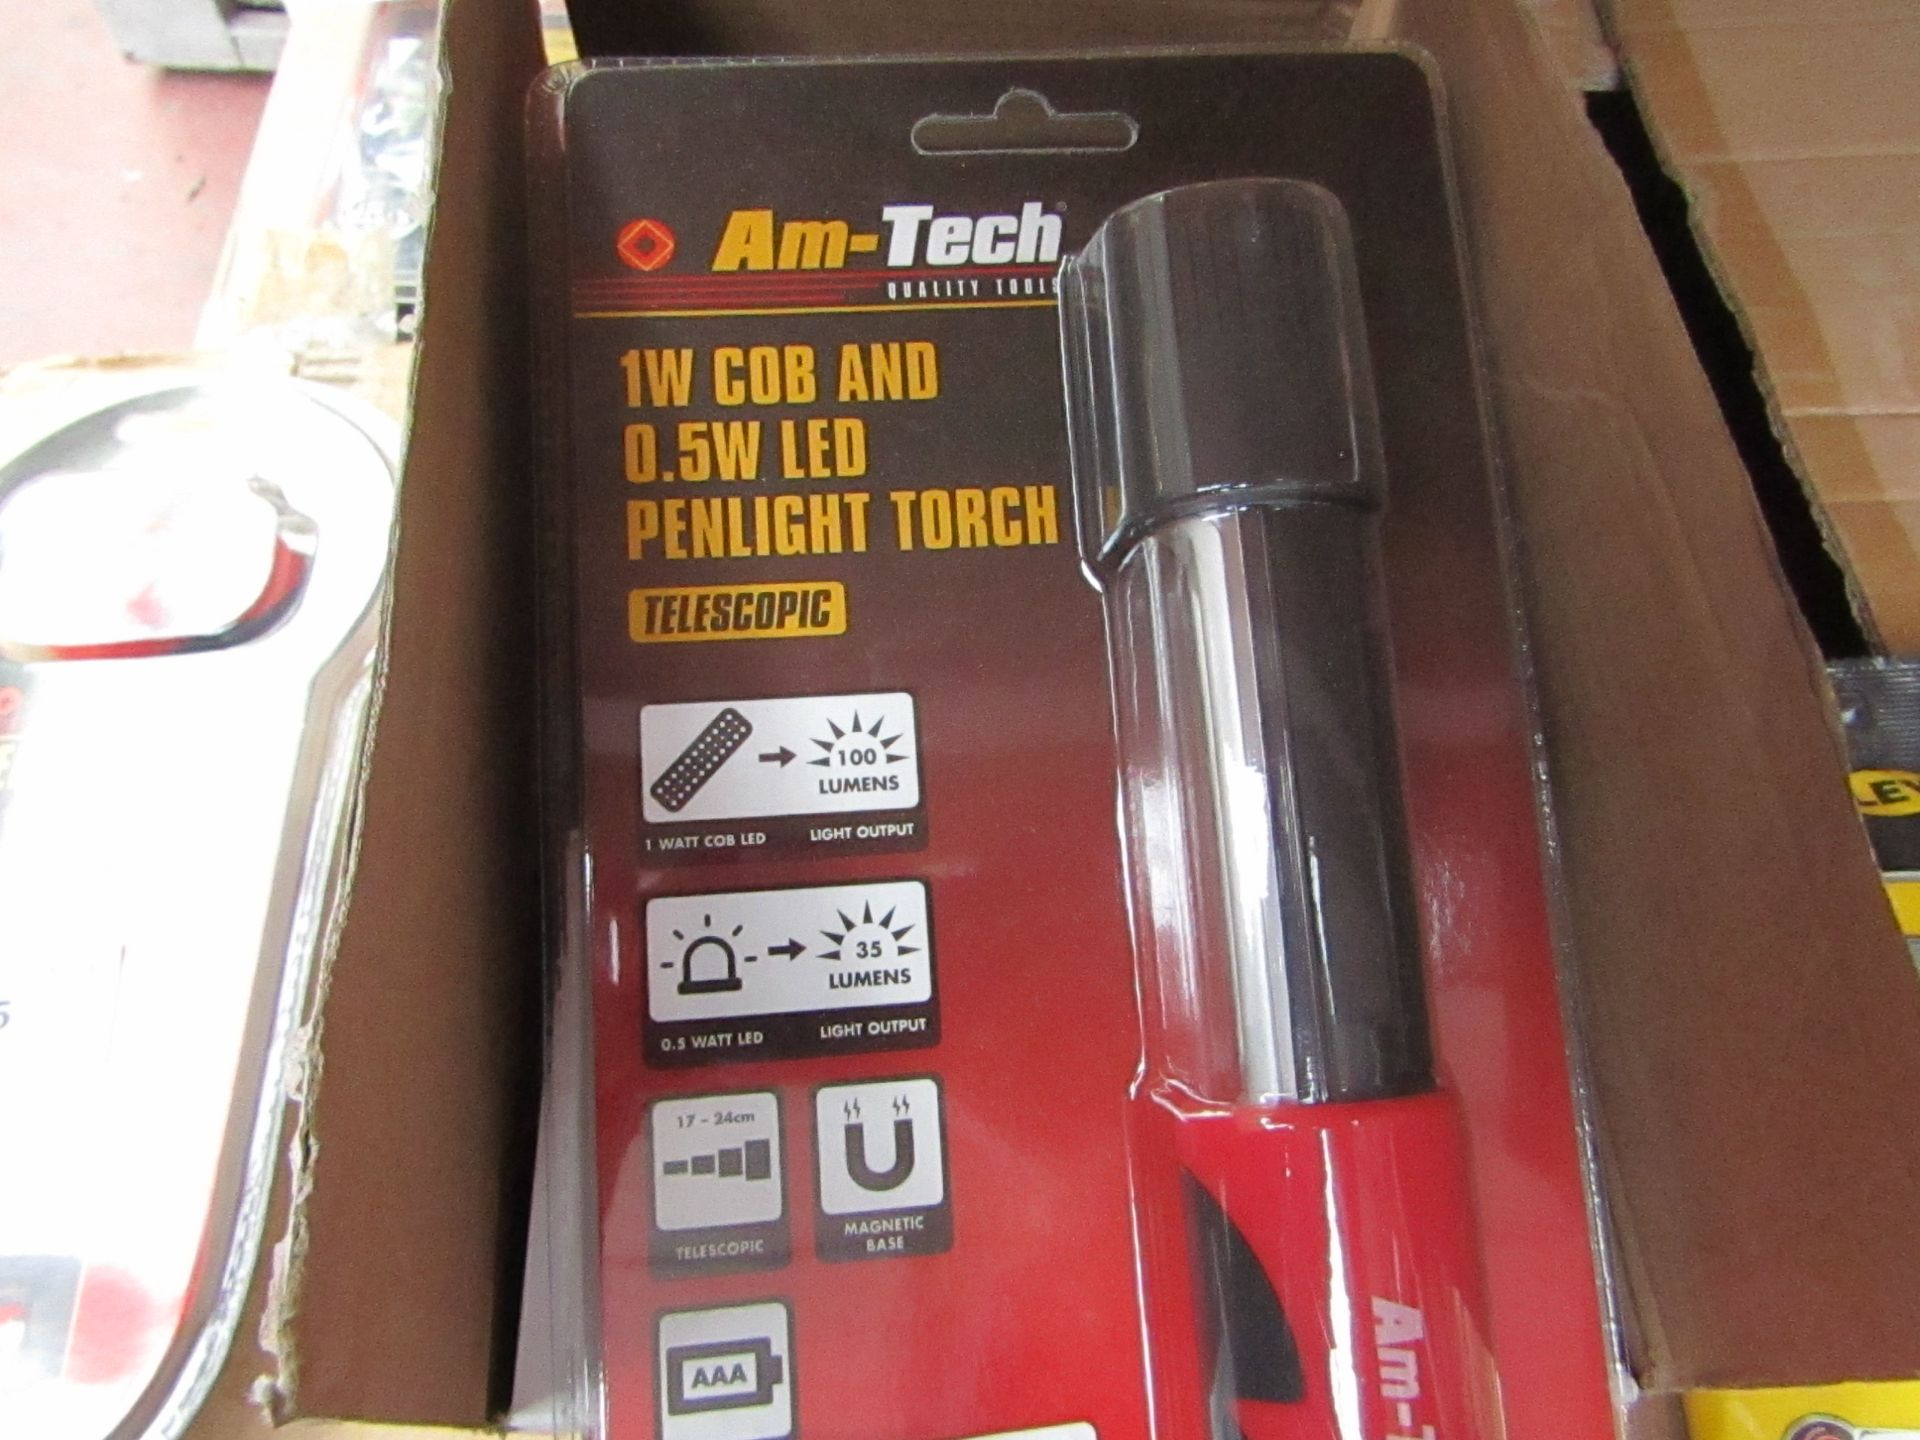 Lot 49 - Am-Tech - 1W Cob & 0.5W LED Penlight Touch - New & Packaged.